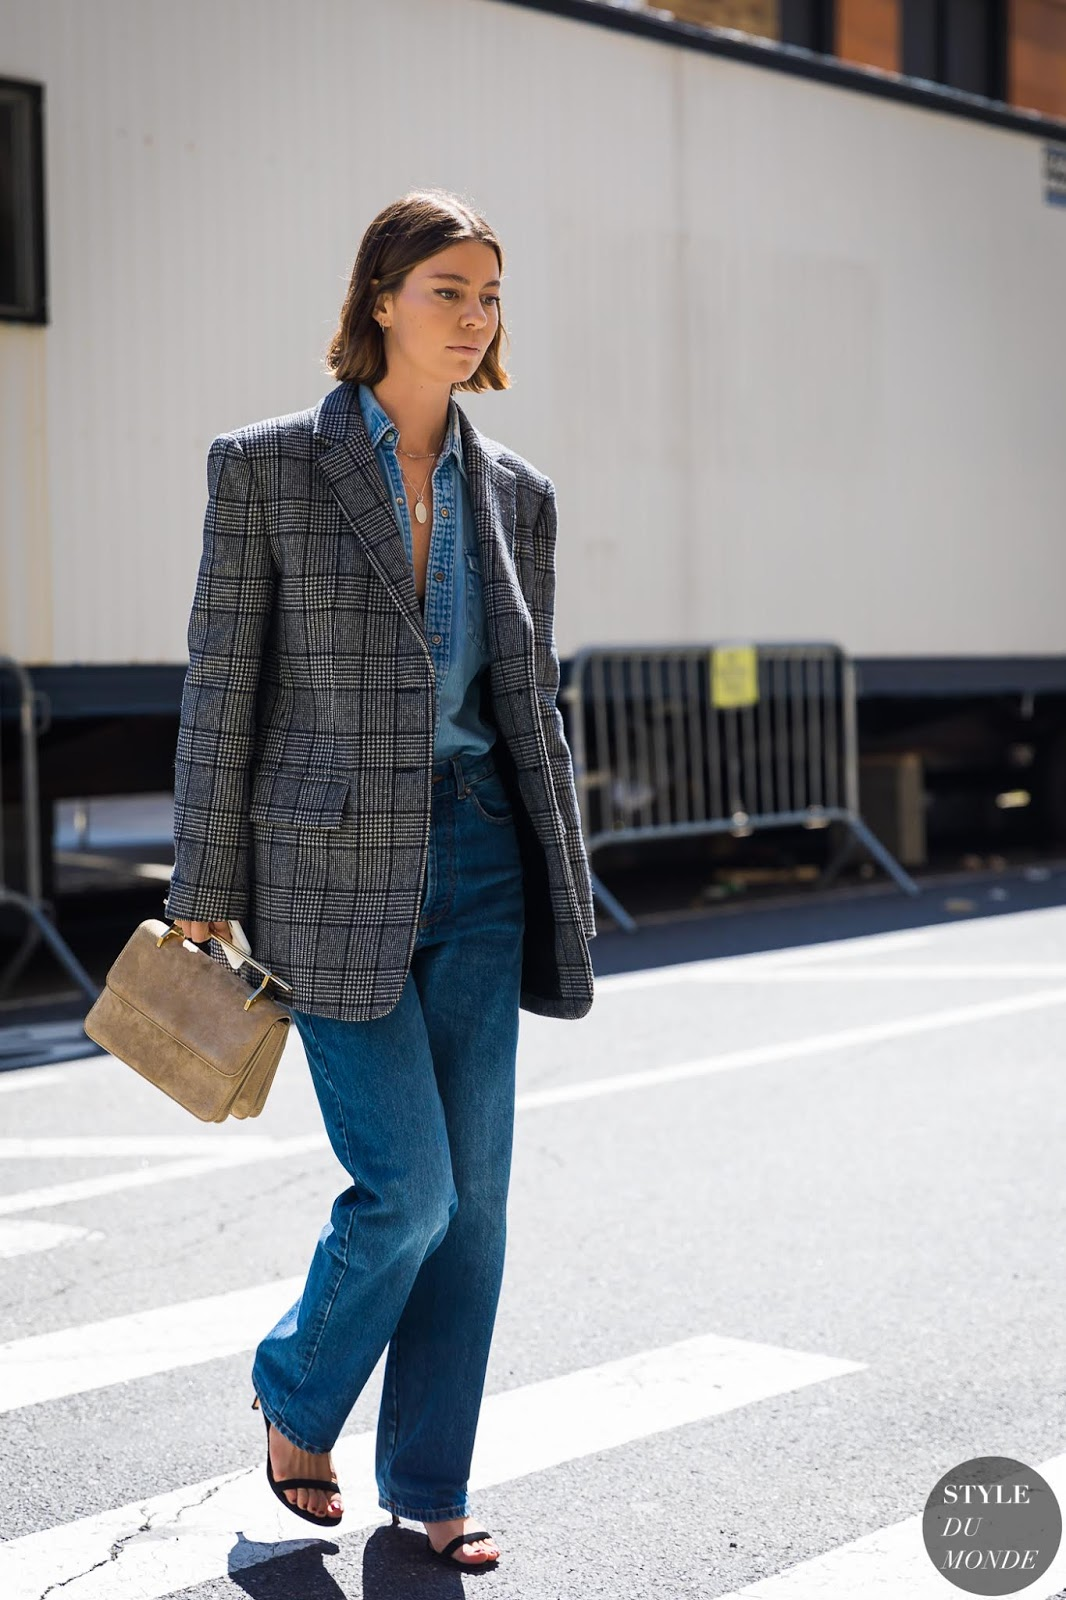 Denim-On-Denim Spring Outfit Inspiration — Annina Mislin in a plaid blazer, denim shirt, straight-leg jeans, and strappy black sandals